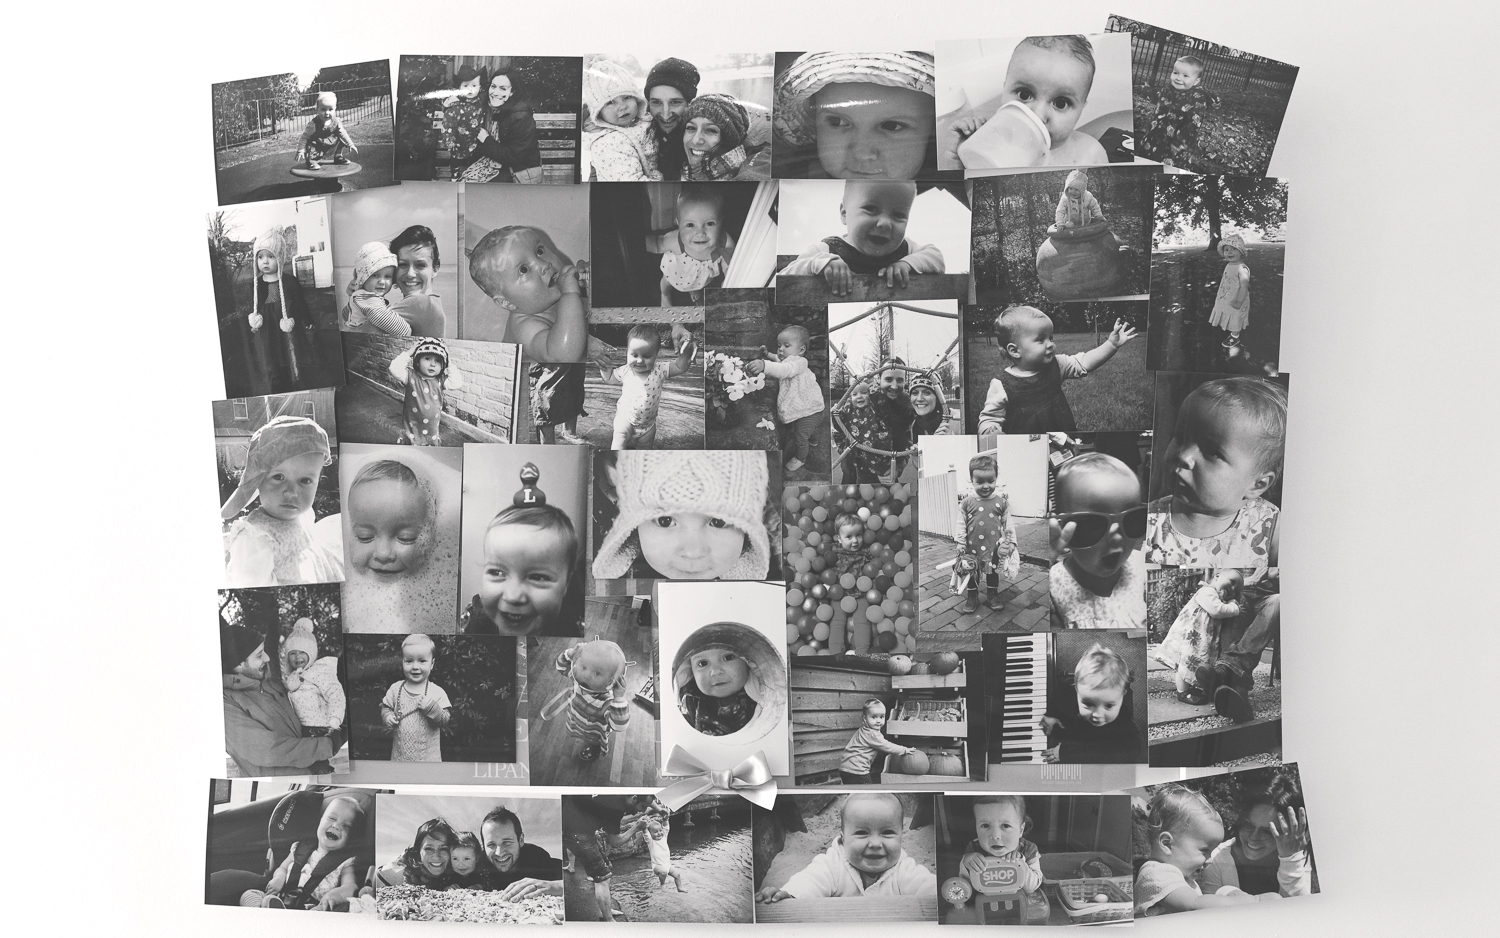 A photograph of all the photographs on the wall from the birthday girls past year